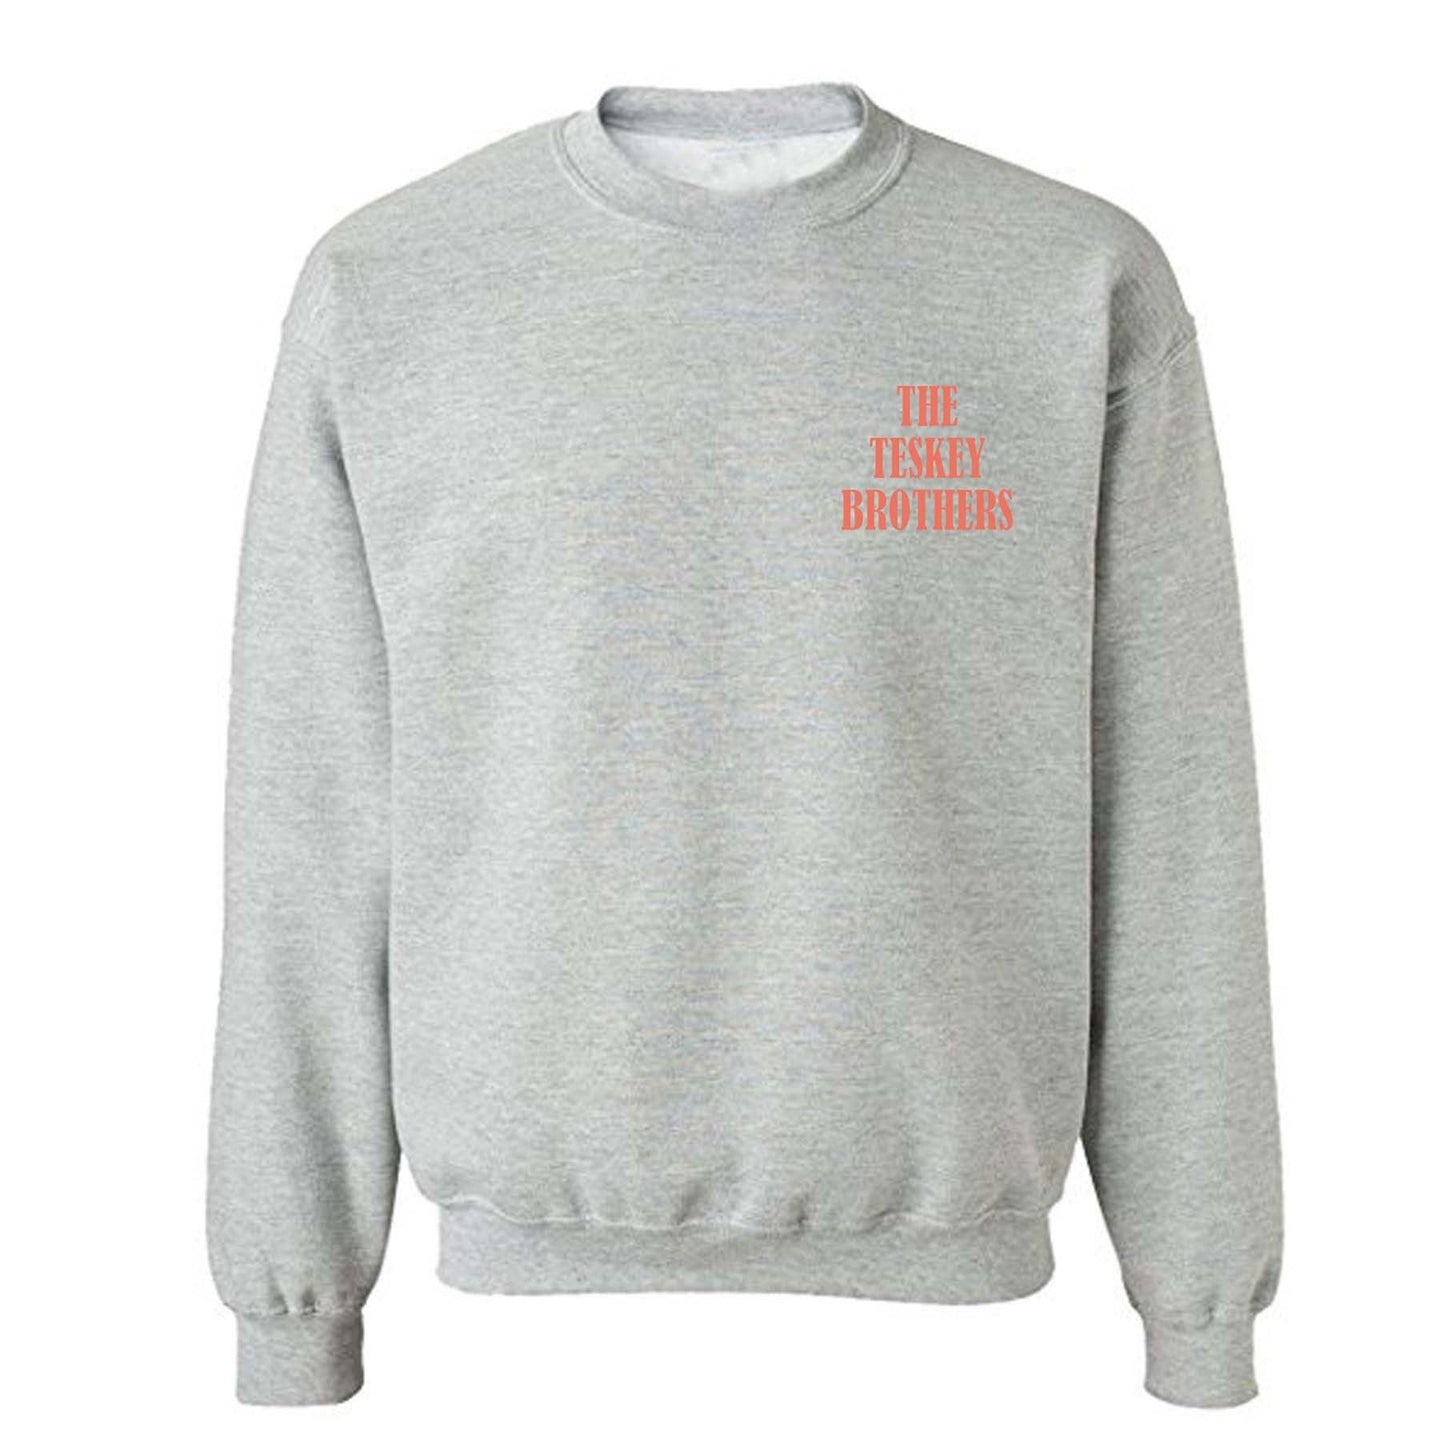 The Teskey Brothers Crewneck (Grey)